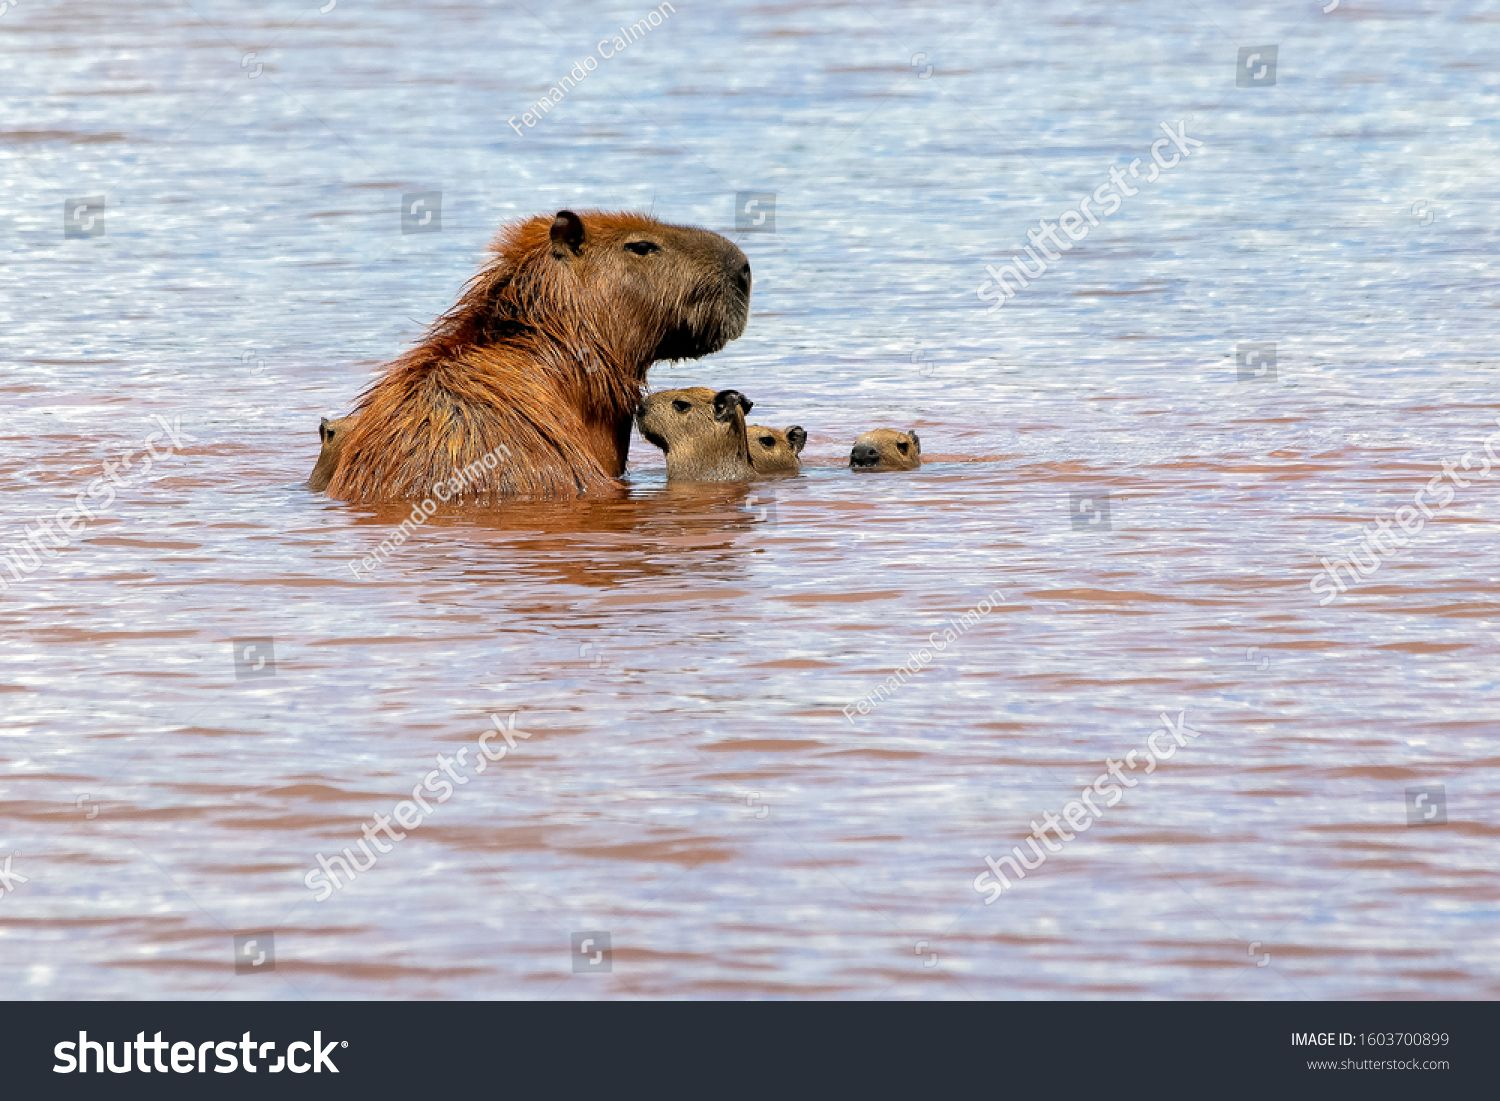 The sunbathing of the mother capybara and her young at Lake Parano¨¢ in Brasilia, Brazil. The capybara is the largest rodent in the world. Species Hydrochoerus hydrochaeris. Wildlife. Cerrado. #Ad , #ad, #Parano#Lake#Brazil#Brasilia